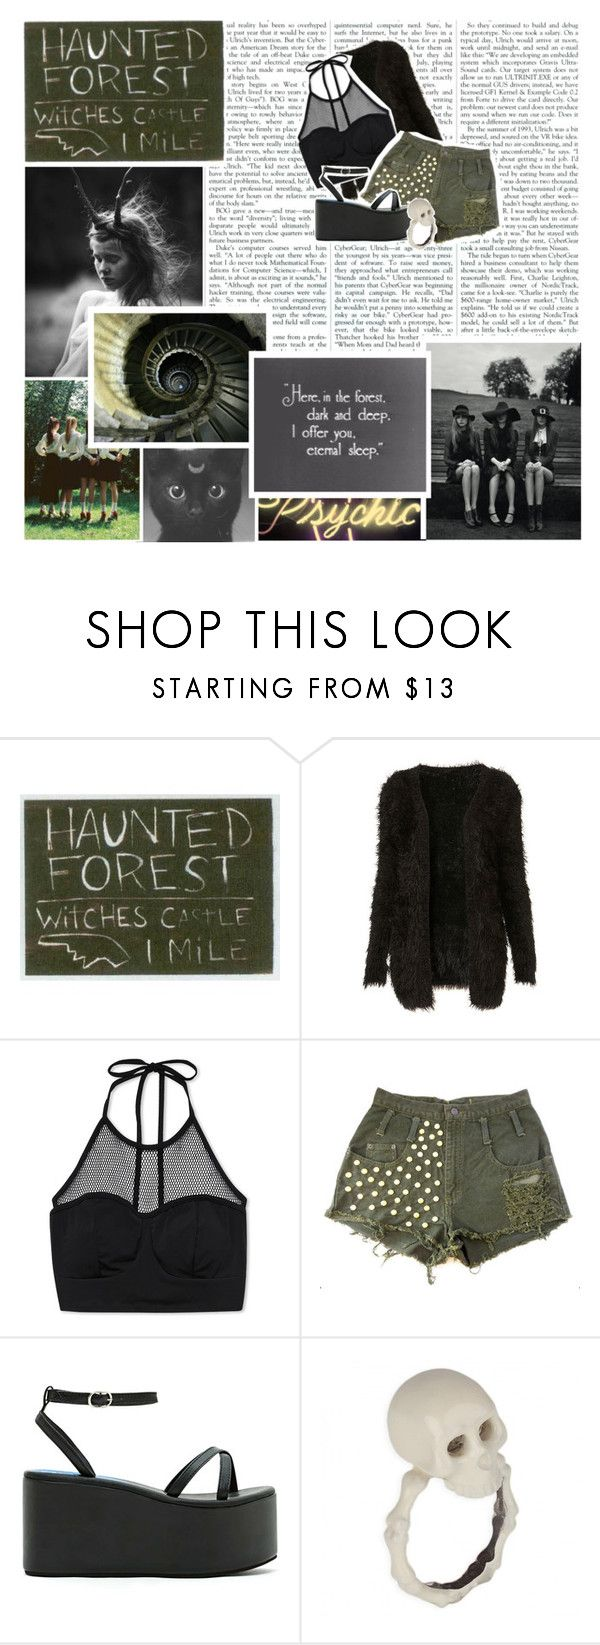 """Here in the forest dark and deep, I offer you eternal sleep"" by thequeenofreading ❤ liked on Polyvore featuring Forever 21 and Jeffrey Campbell"